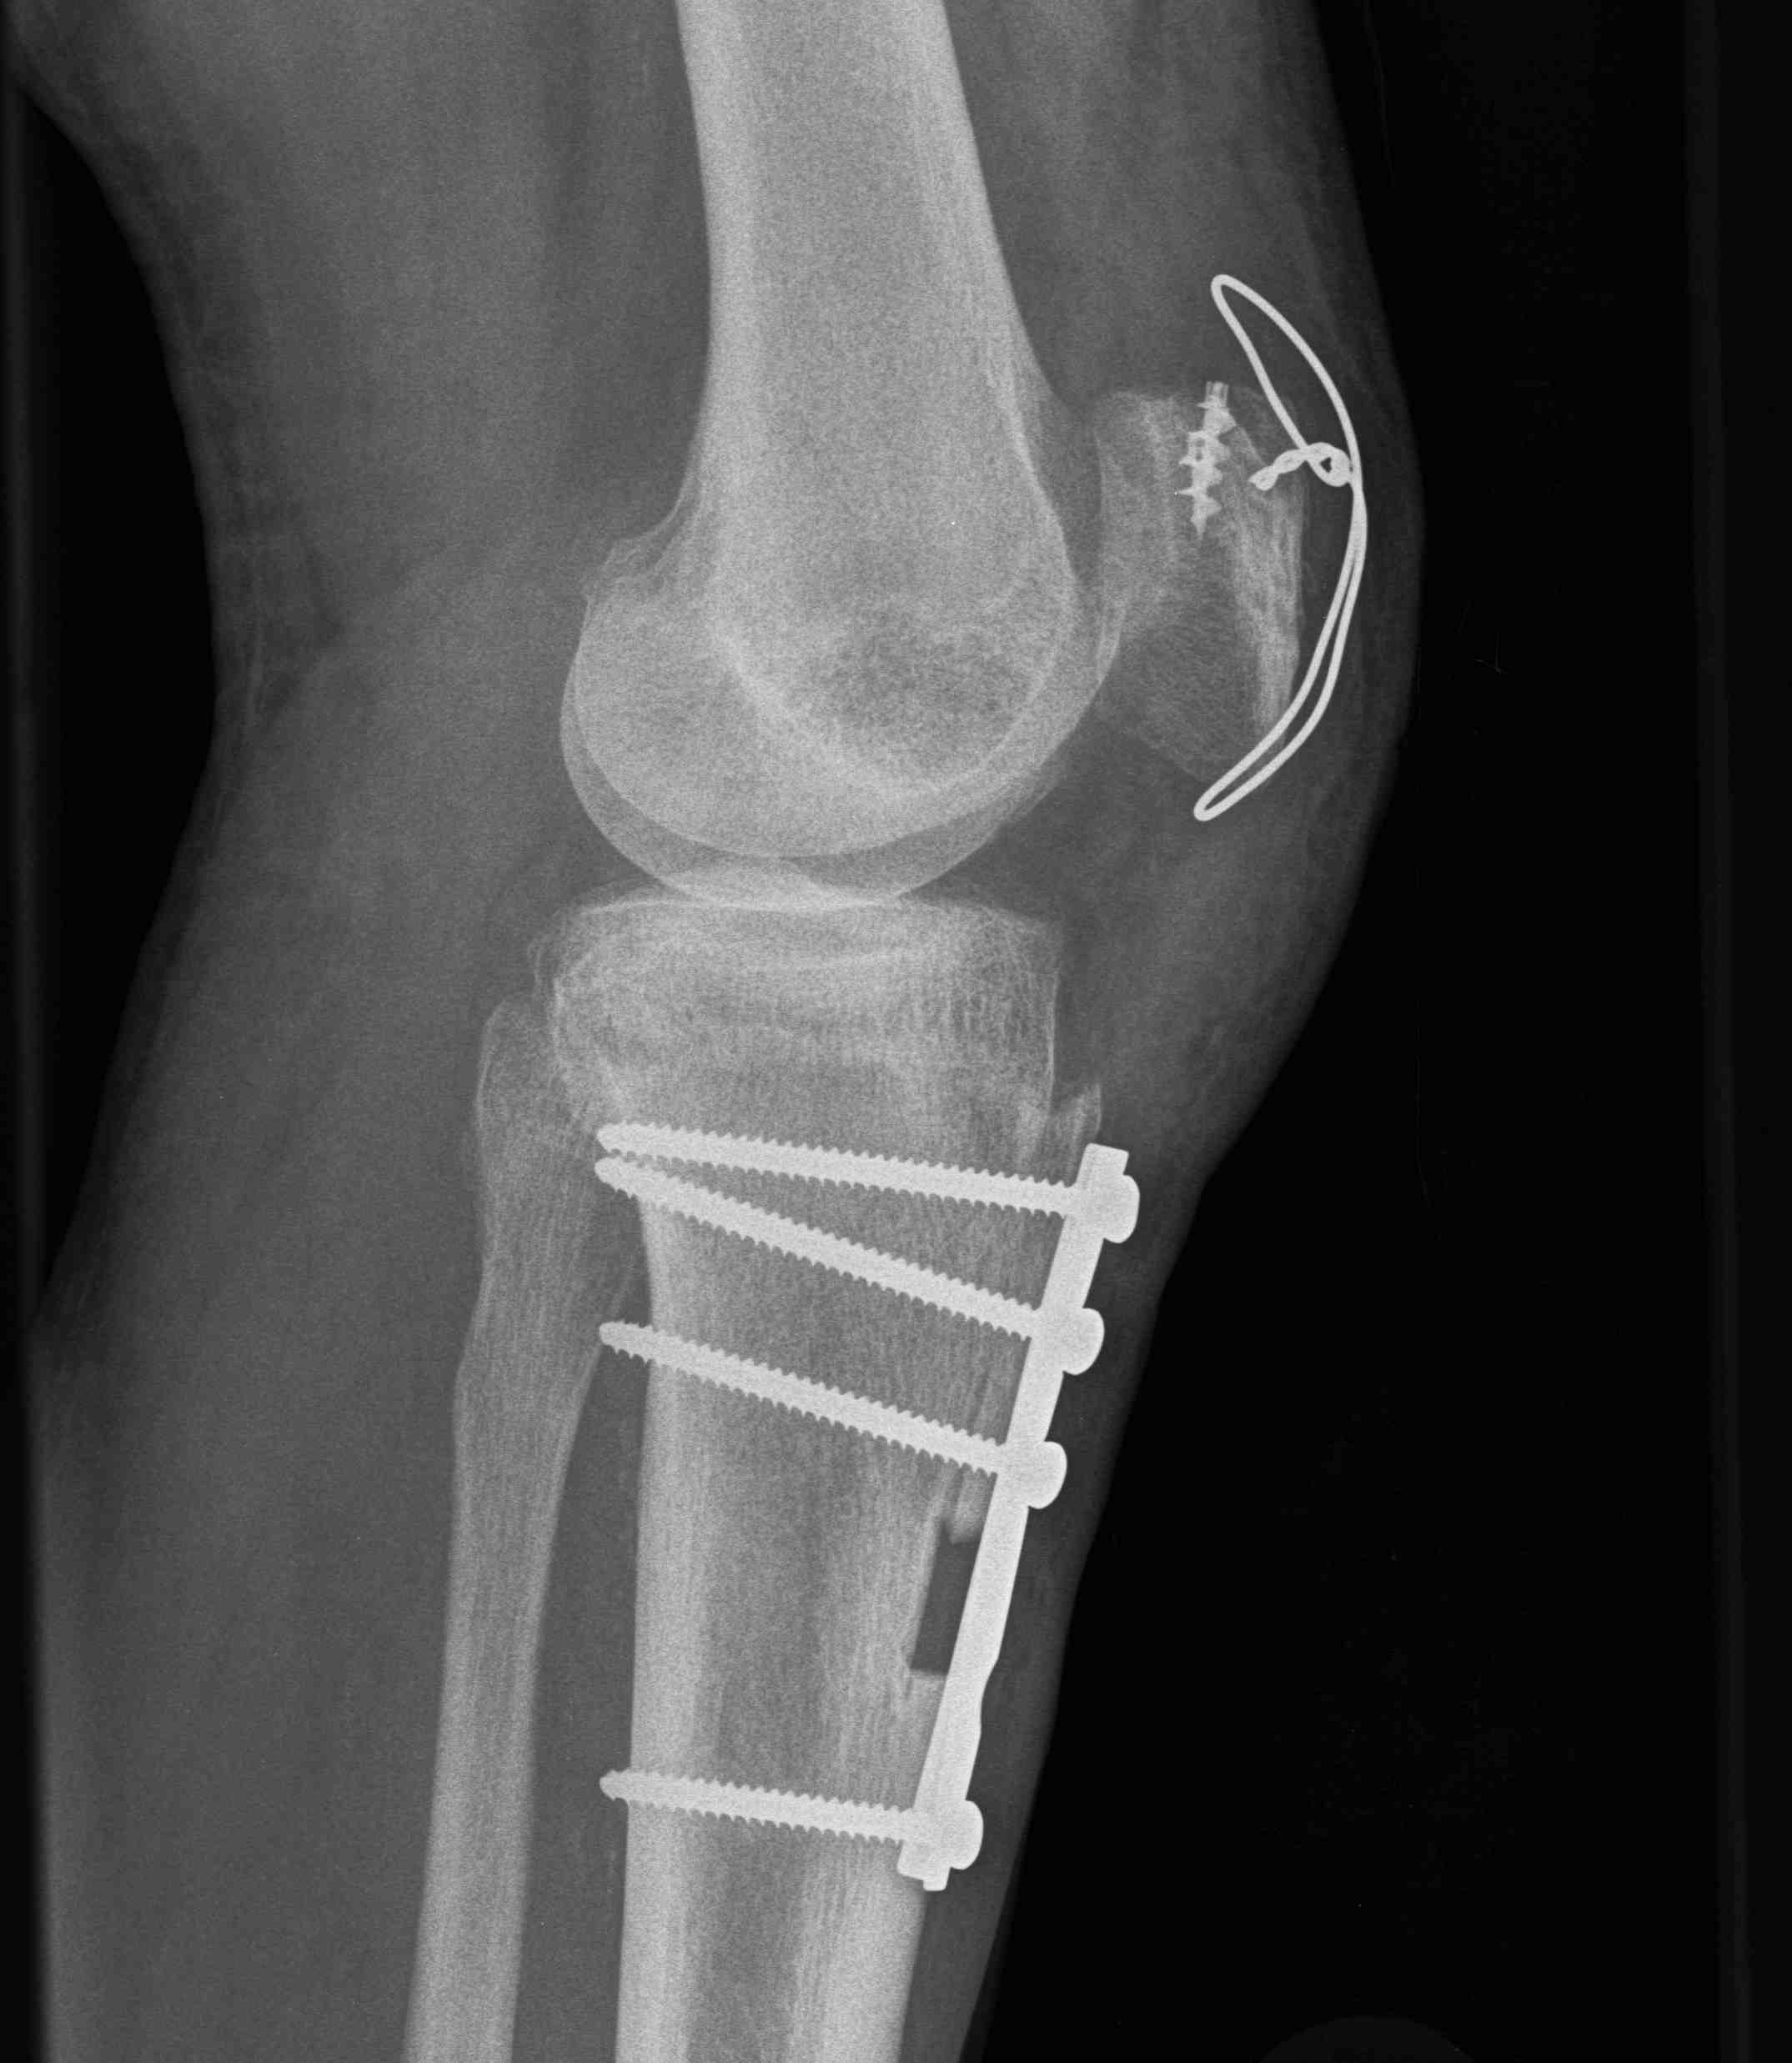 Revision Quadriceps Repair with Tibial Tuberosity Osteotomy